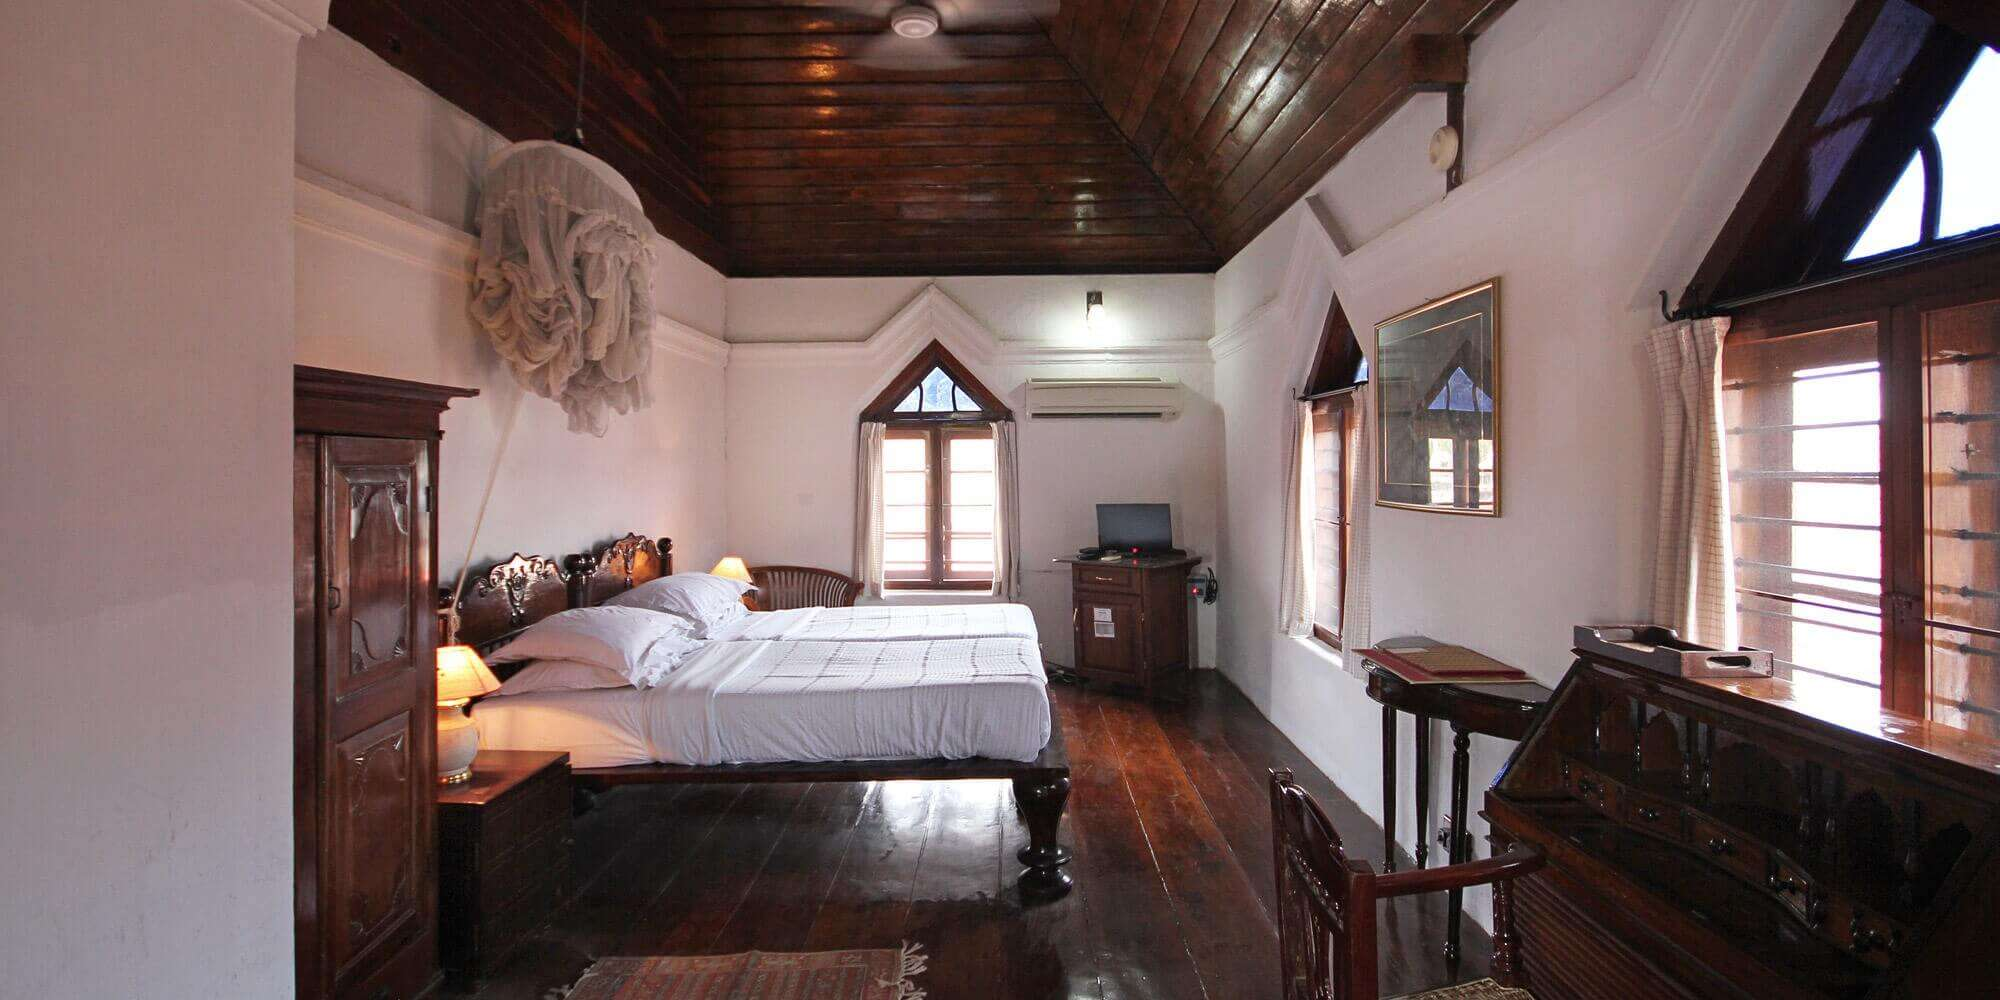 an old style hotel room in Kerala with a bed inside